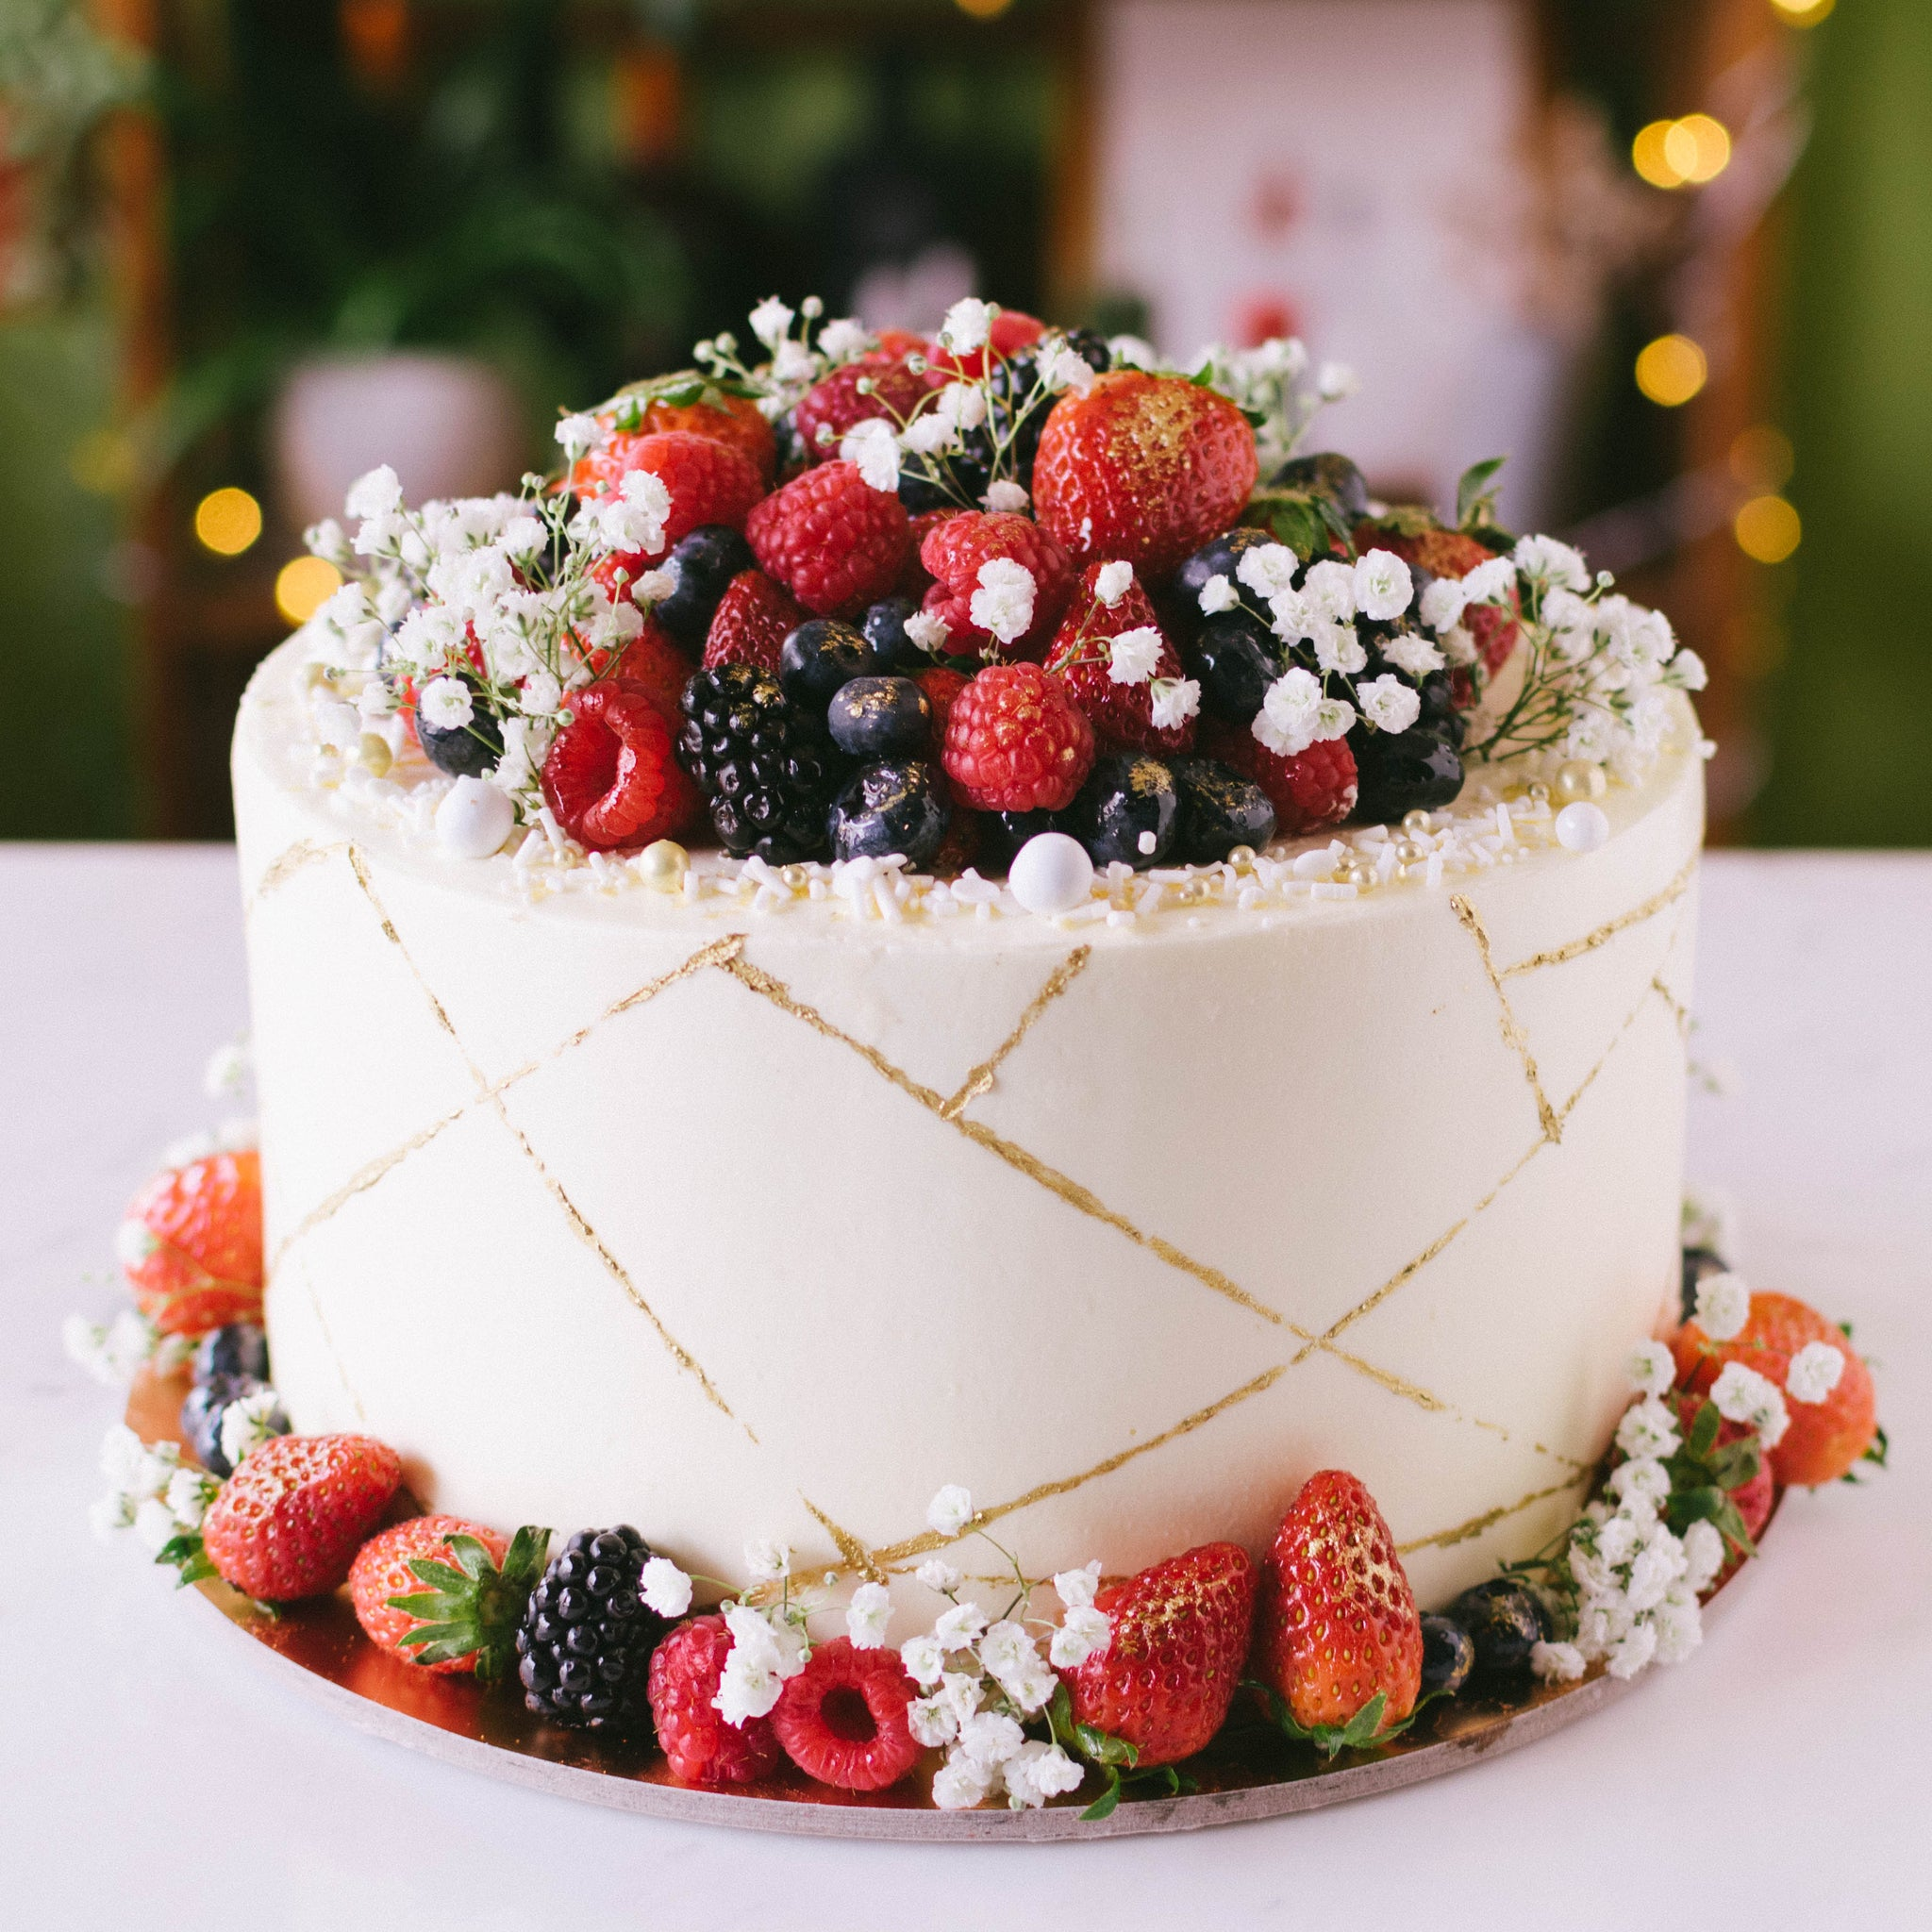 Gold Accent Cake with Mixed Berries and Florals - Custom Bakes by Edith Patisserie